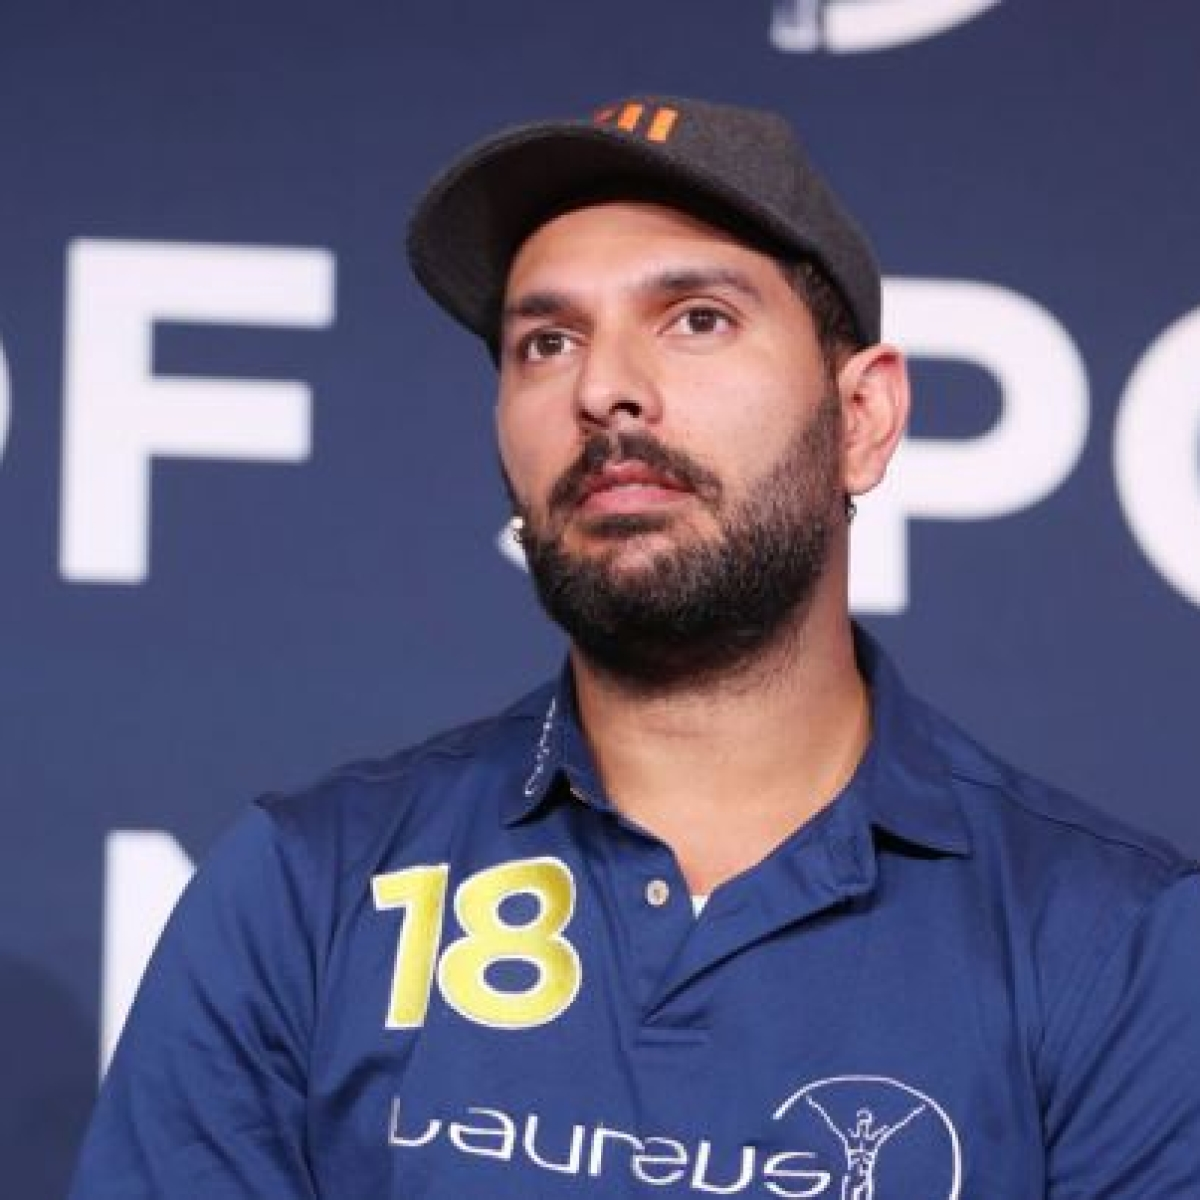 'Completely wrong': Yuvraj Singh slams Indian team management's planning for 2019 World Cup